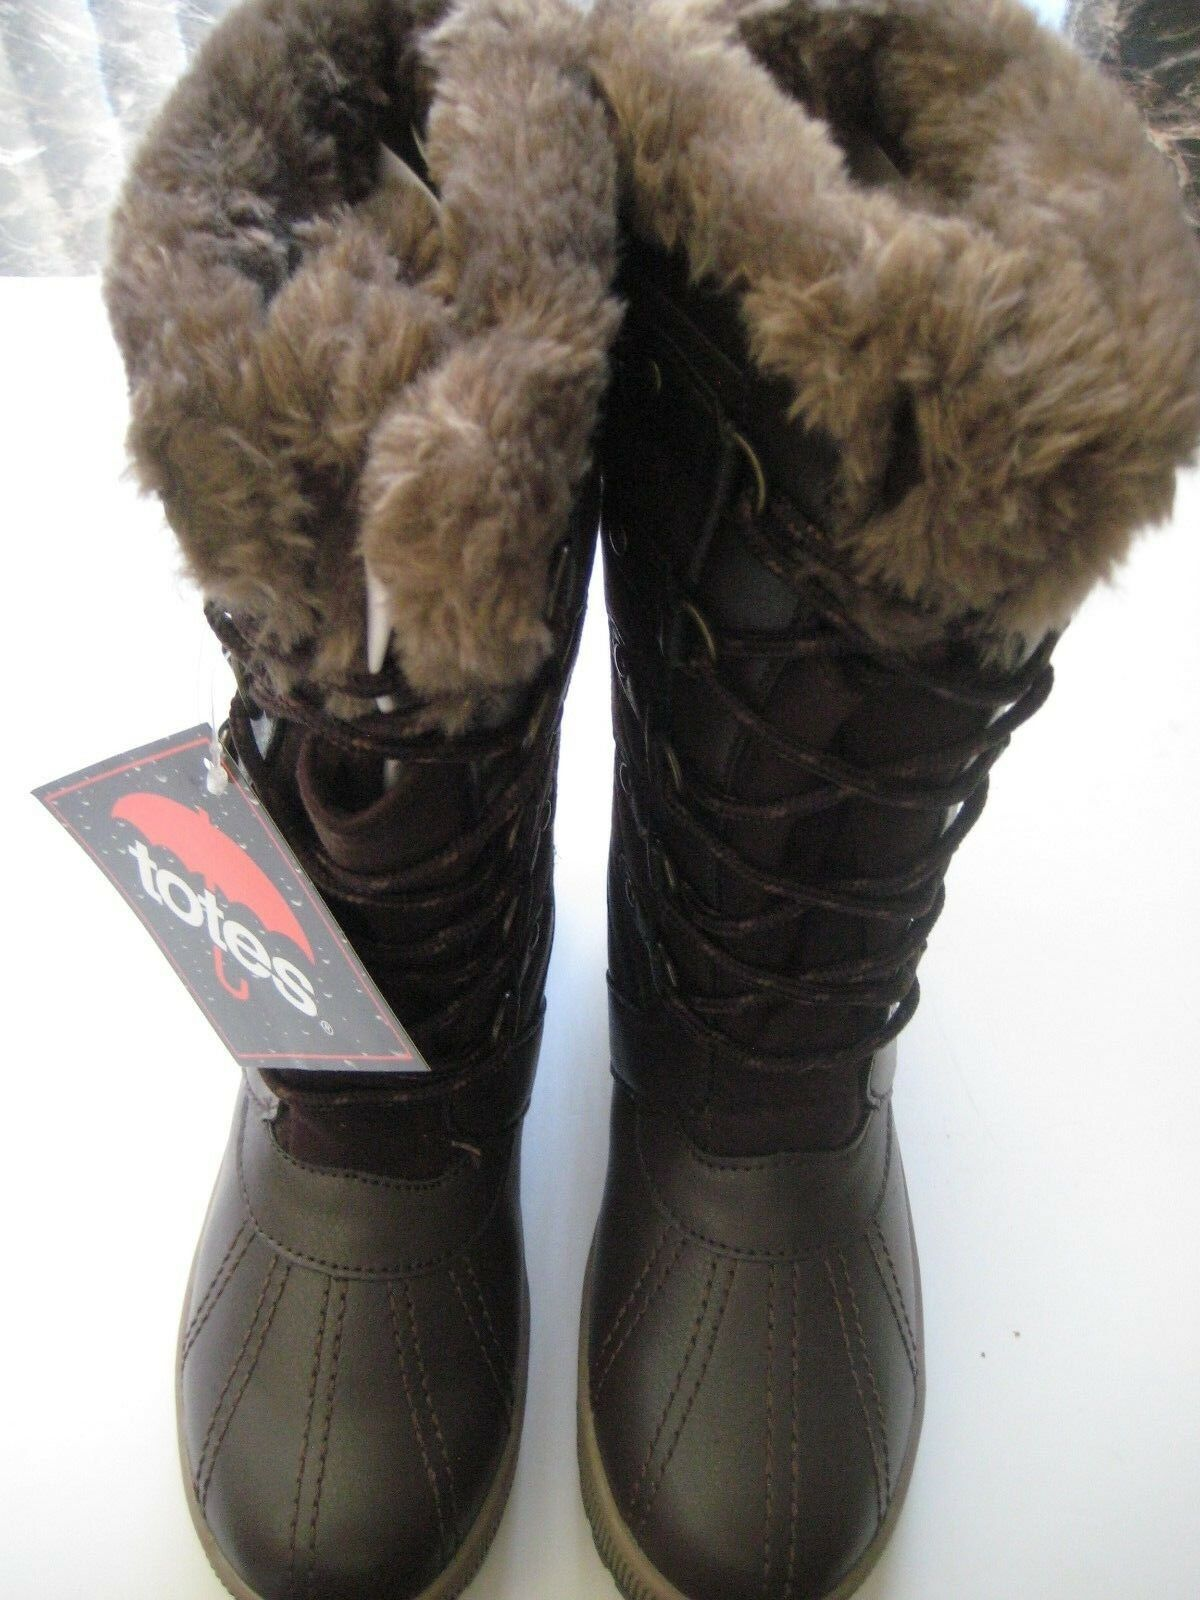 Totes GEMMA WOMEN'S WINTER BOOTS SIZE 6 MED BROWN